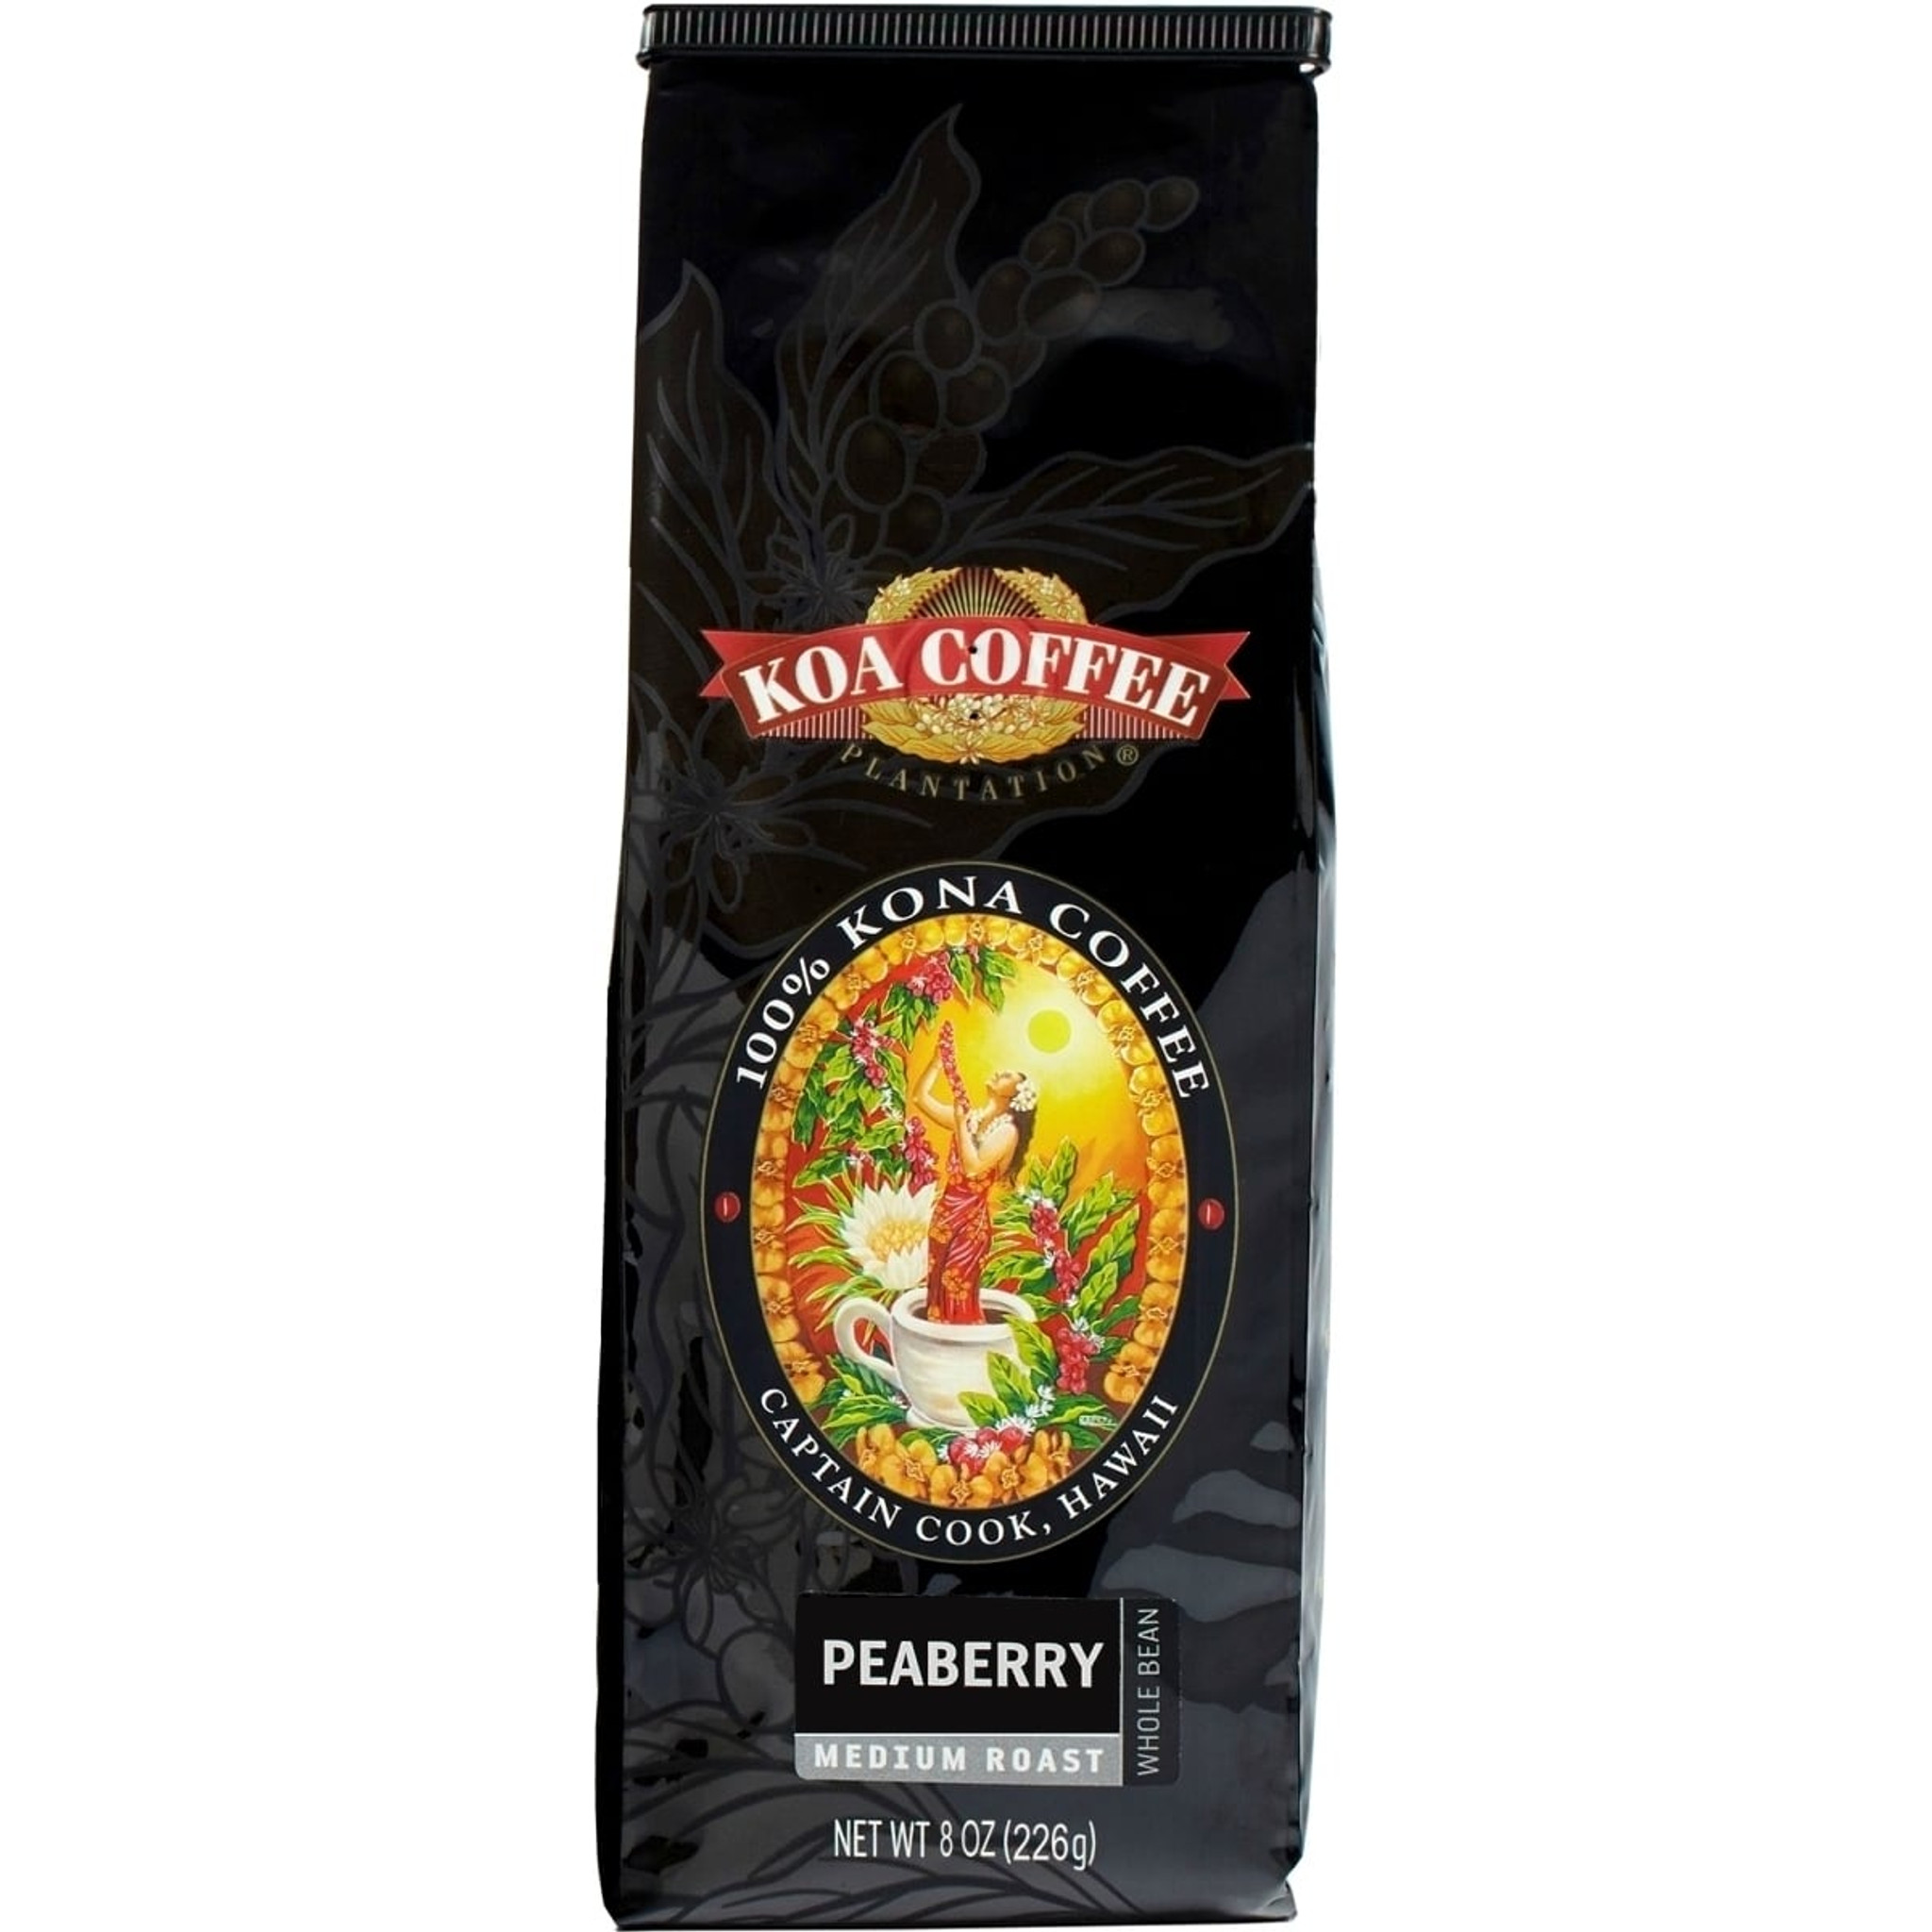 Peaberry Kona Coffee